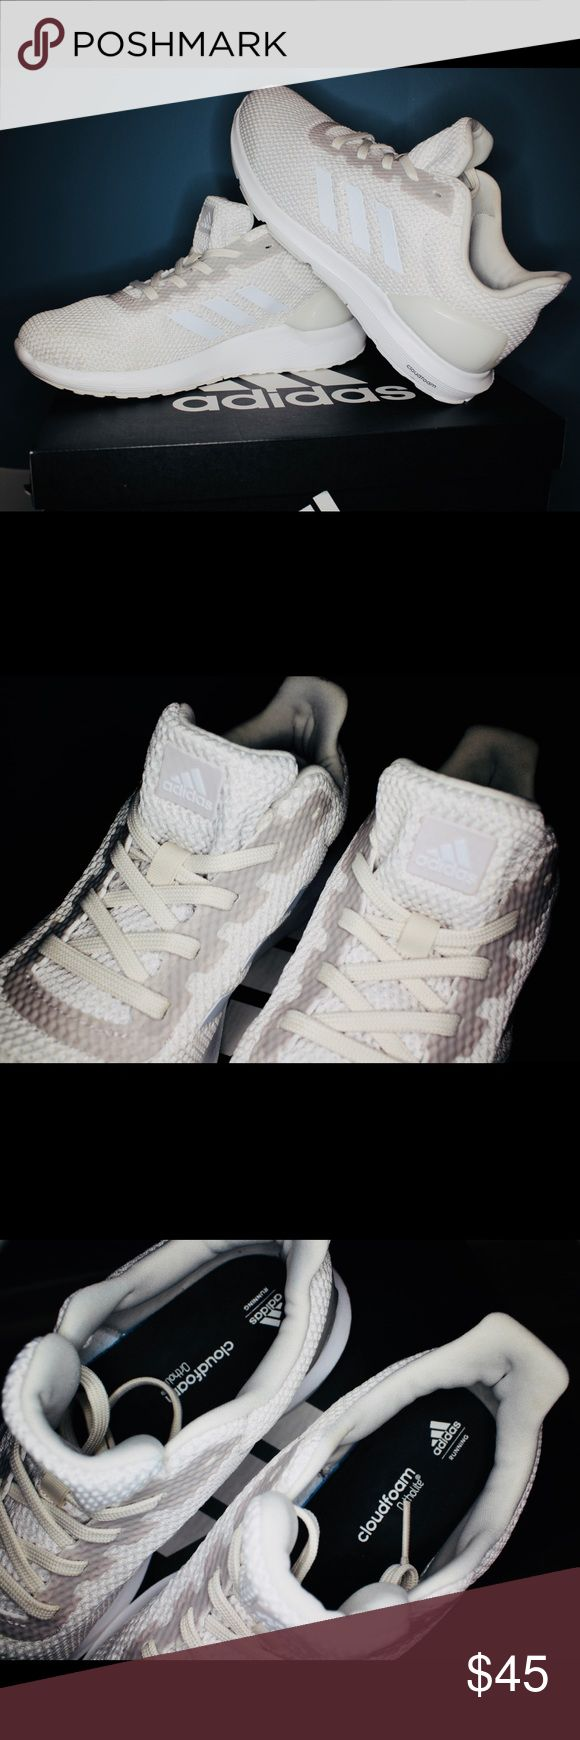 Adidas Cloud Foam Sneakers Adidas CloudFoam Sneakers. Worn twice they are in great conditions and they are an off white almost beige color. adidas Shoes Sneakers